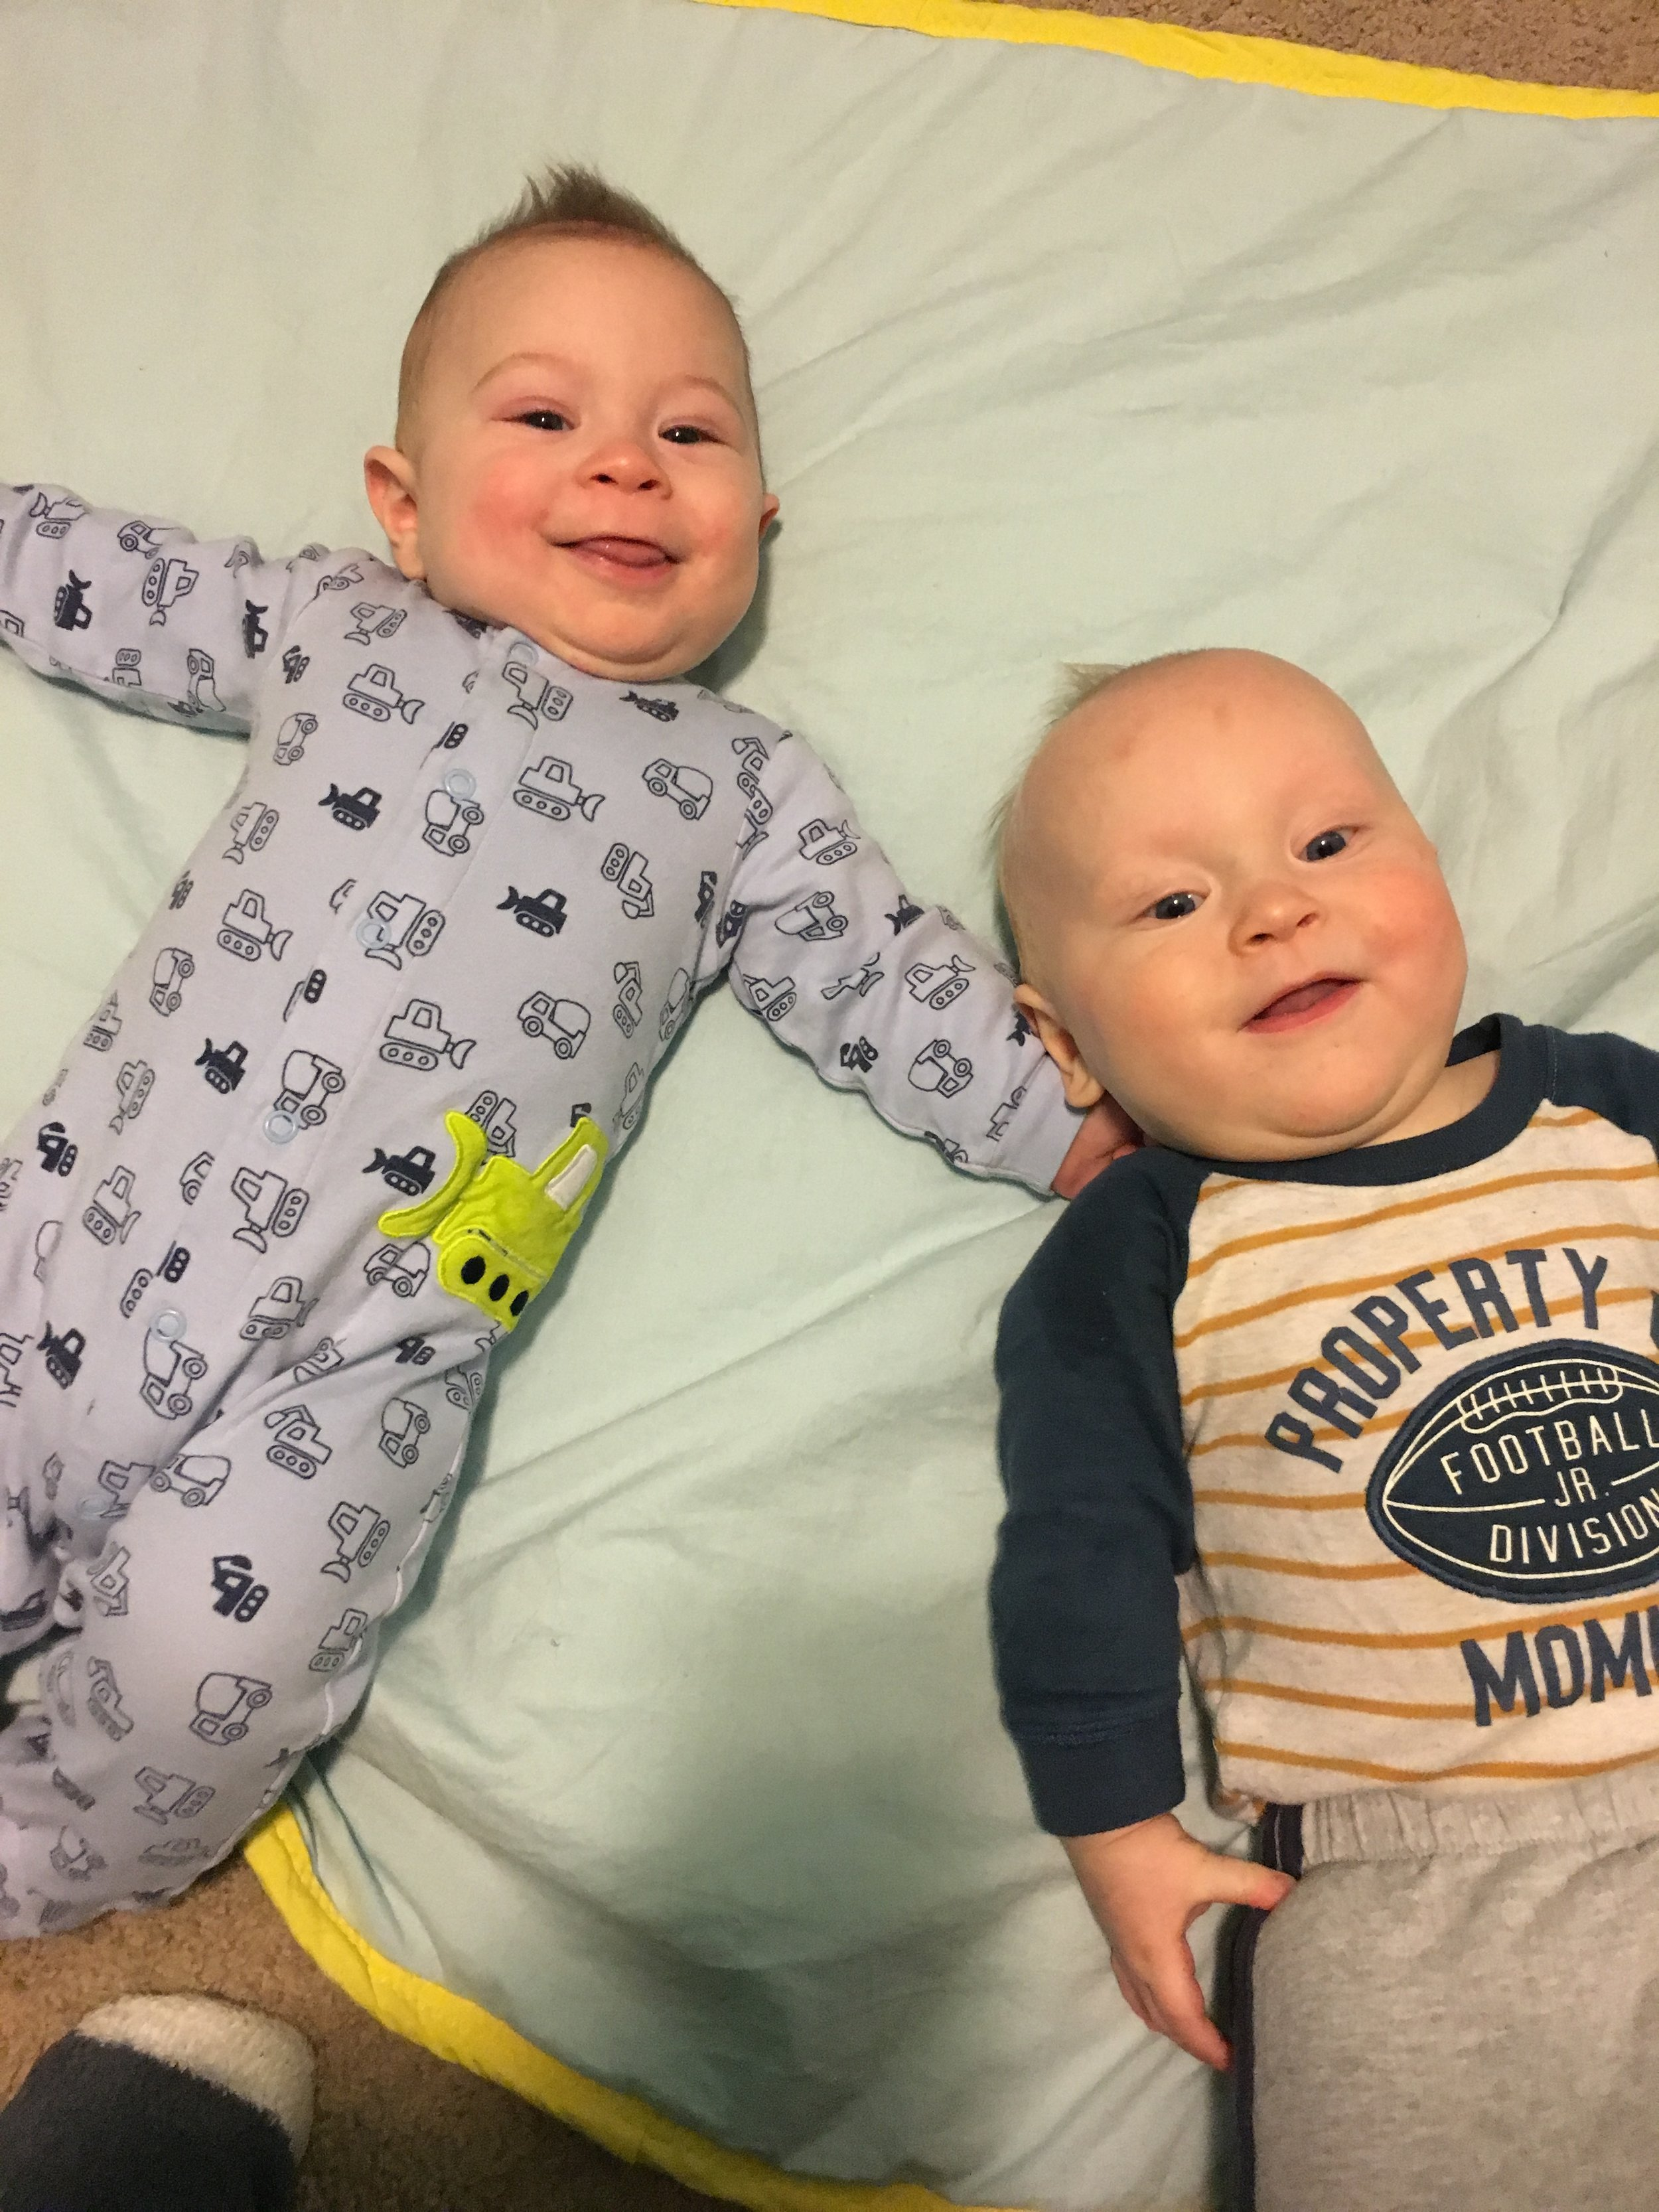 R&R – Twins & best buds for life